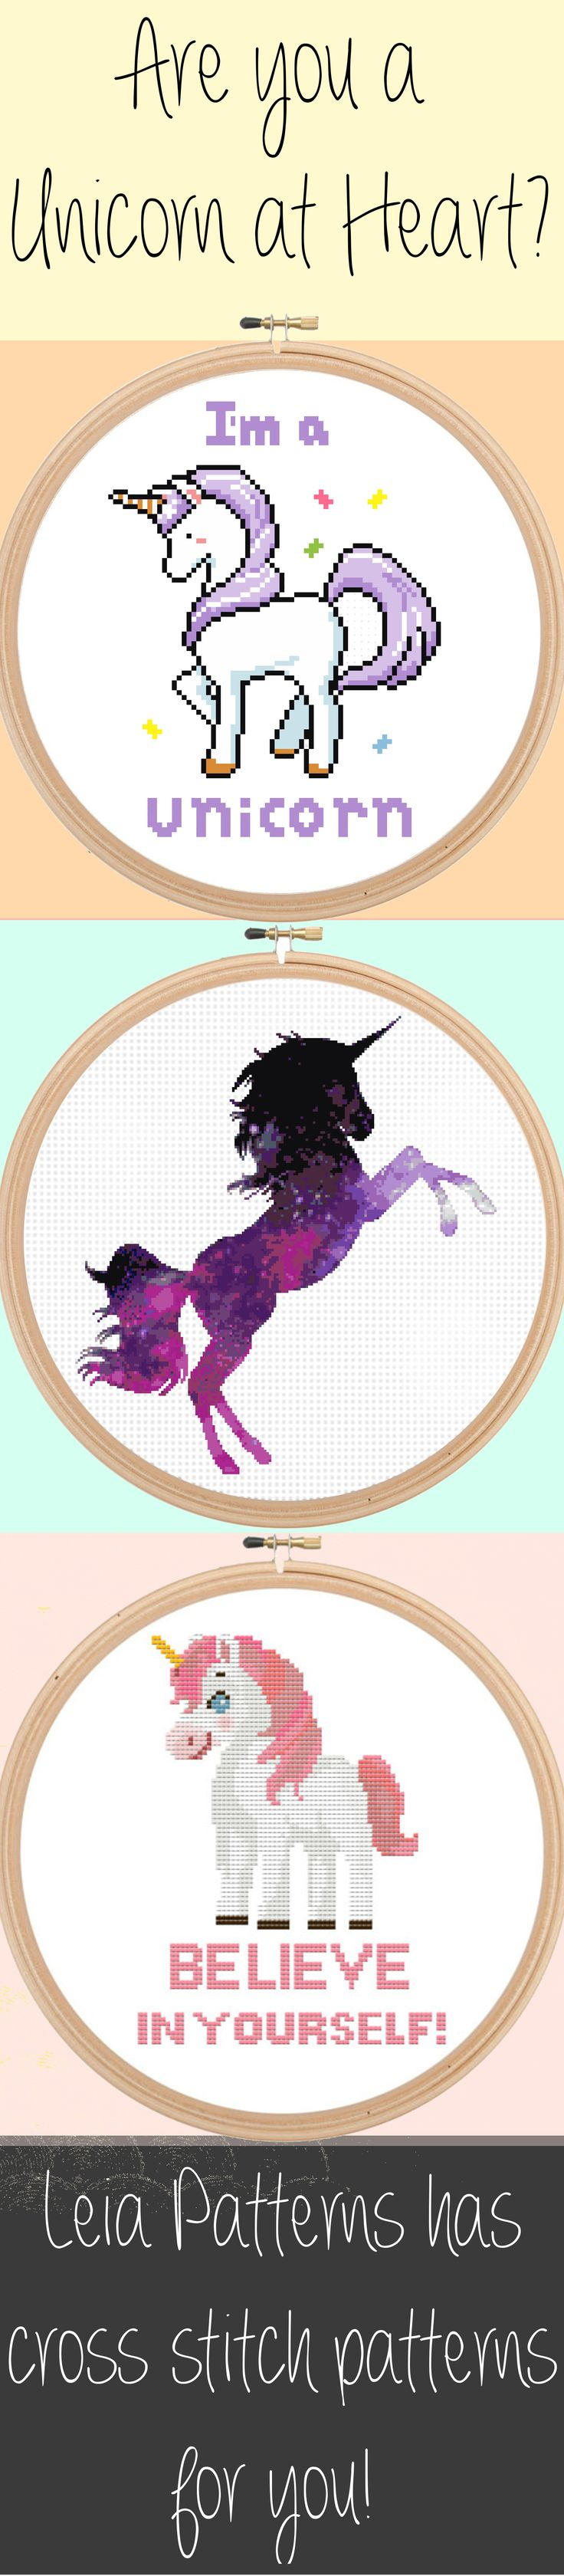 "Leia Patterns Quote Cross Stitch Pattern - I'm a Unicorn - Magical Cute Modern Pattern - PDF - Instant Download ""I'm a Unicorn"" Cross Stitch Pattern  This is a fun cross stitch pattern of a Unicorn! If you feel that you are truly a unicorn at heart than this pattern is perfect for you! This pattern also makes a great gift for all the unicorns in your life :)  Pattern Specifics: ------------------------ Colors: 11 Floss Colors Size: 6.9 x 5.4 in. / 17.5 x 13.7 cm.  Grid Size: 96 x 75  Canvas…"